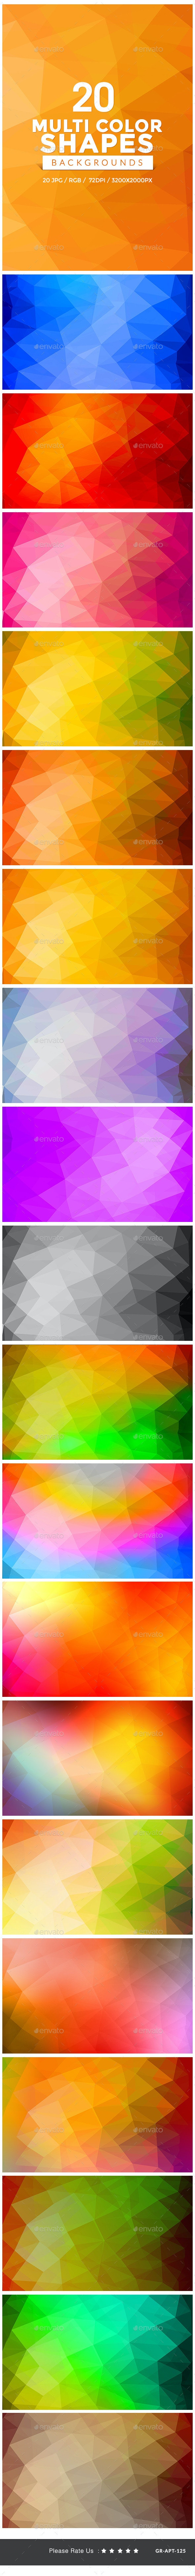 20 Multi Color Shape Backgrounds - Abstract Backgrounds